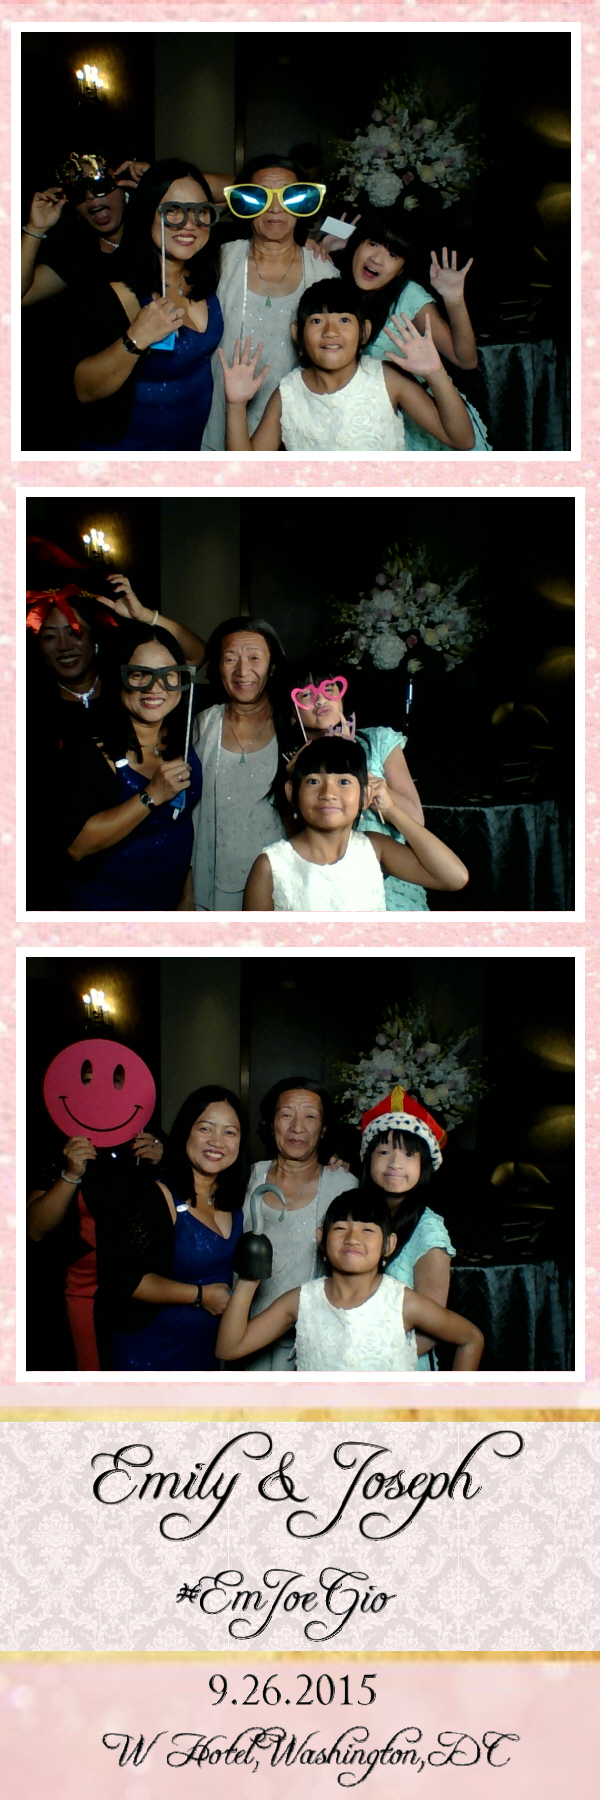 Guest House Events Photo Booth E&J (44).jpg